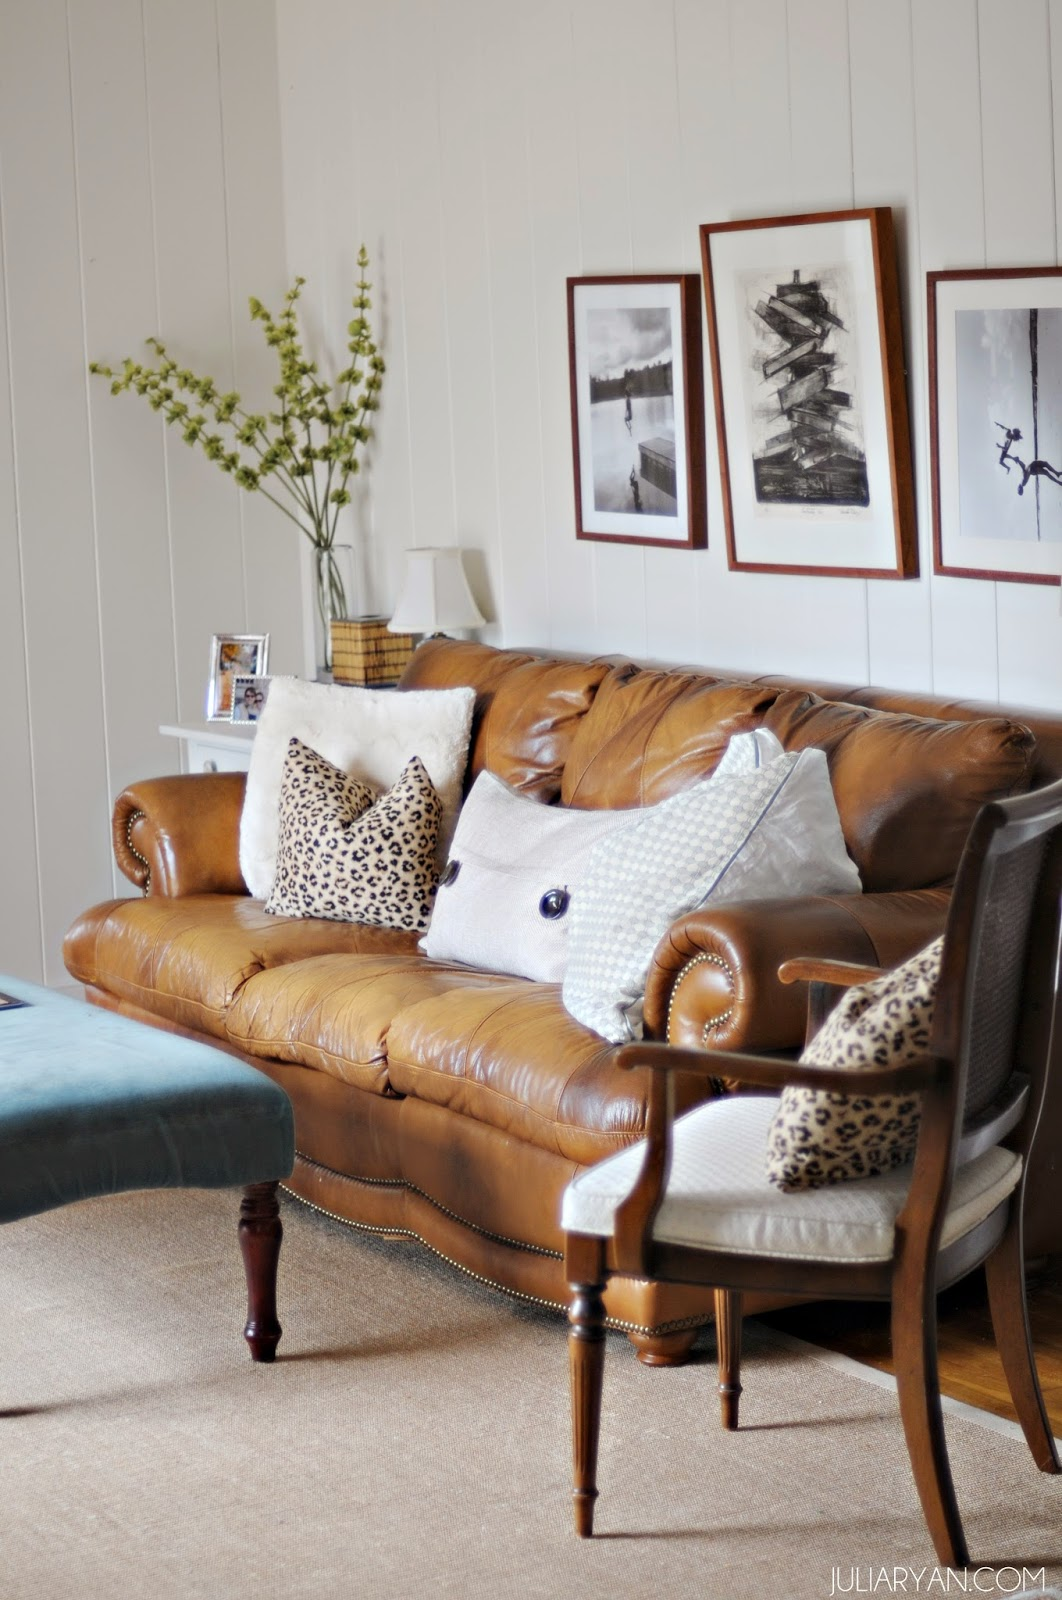 Julia ryan leather sofa styling new house family room for How much rooms does the white house have